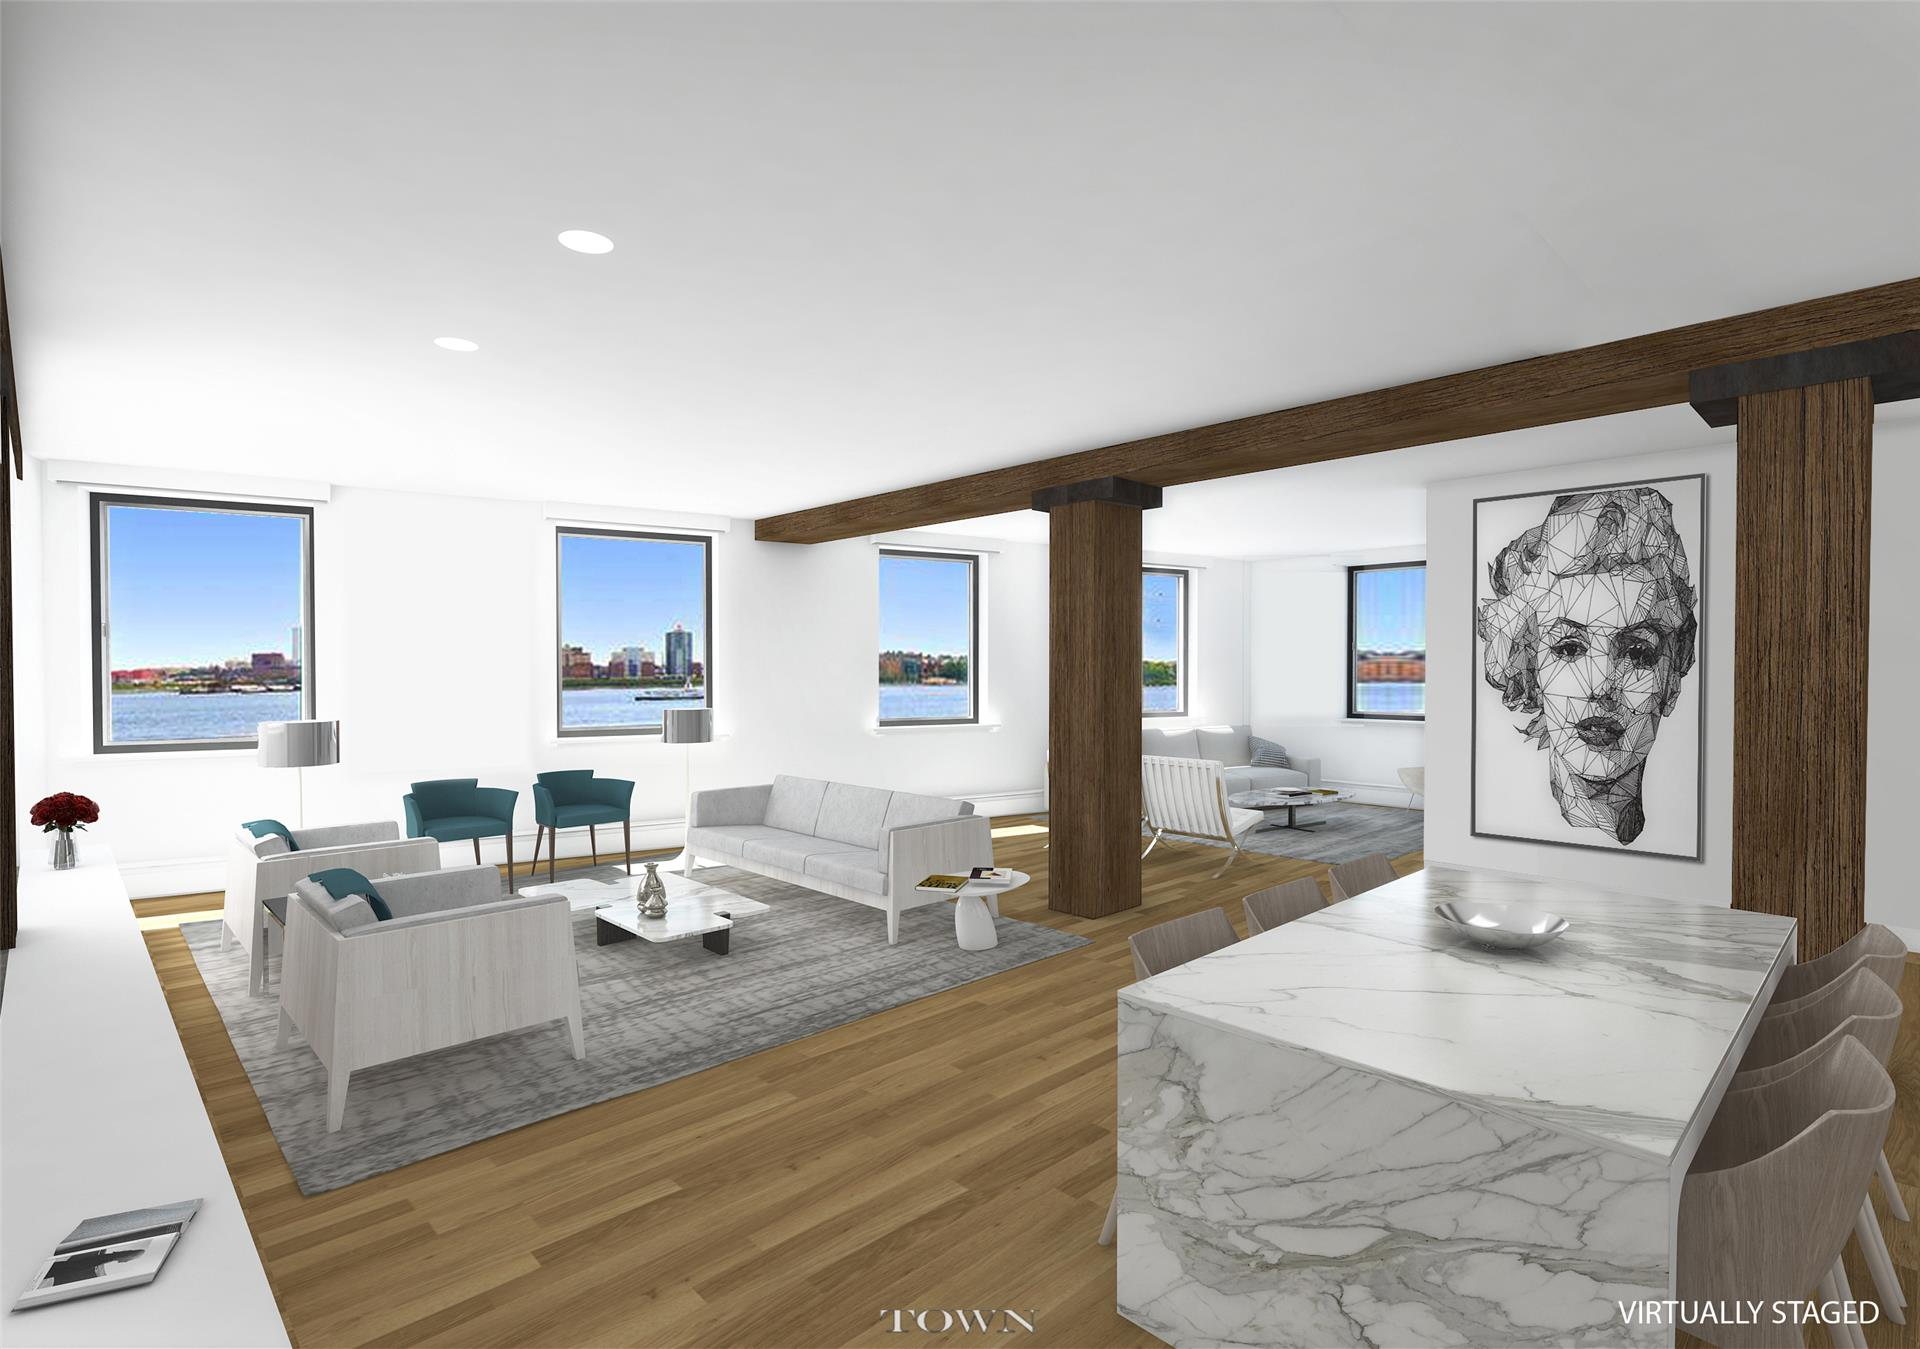 Co-op for Sale at 166 Bank Street, #6-B 166 Bank Street New York, New York 10014 United States